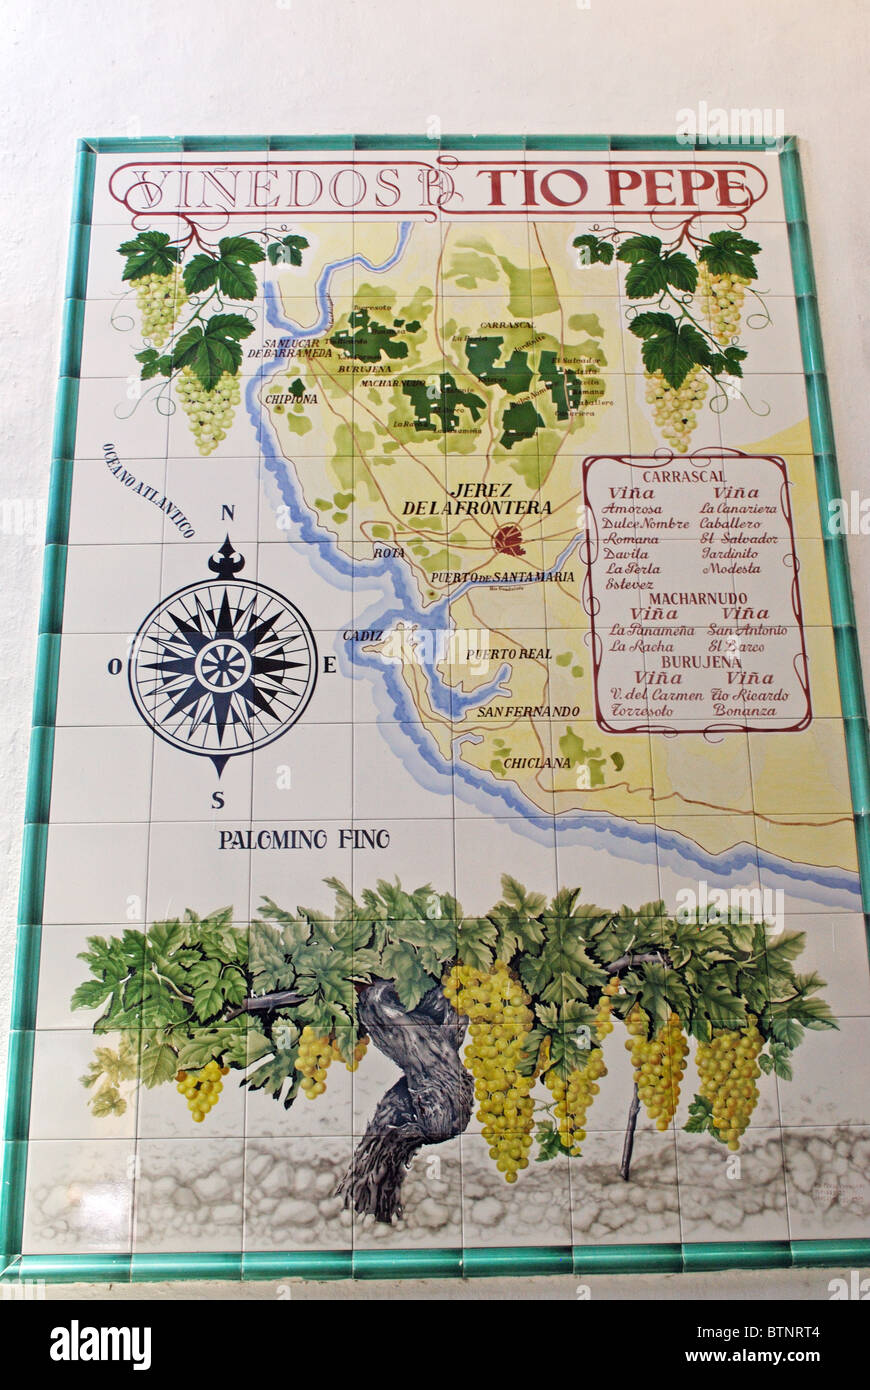 Chipiona Spain Map.Ceramic Map Of Vineyards Outside The Gonzales Byass Bodega Jerez De